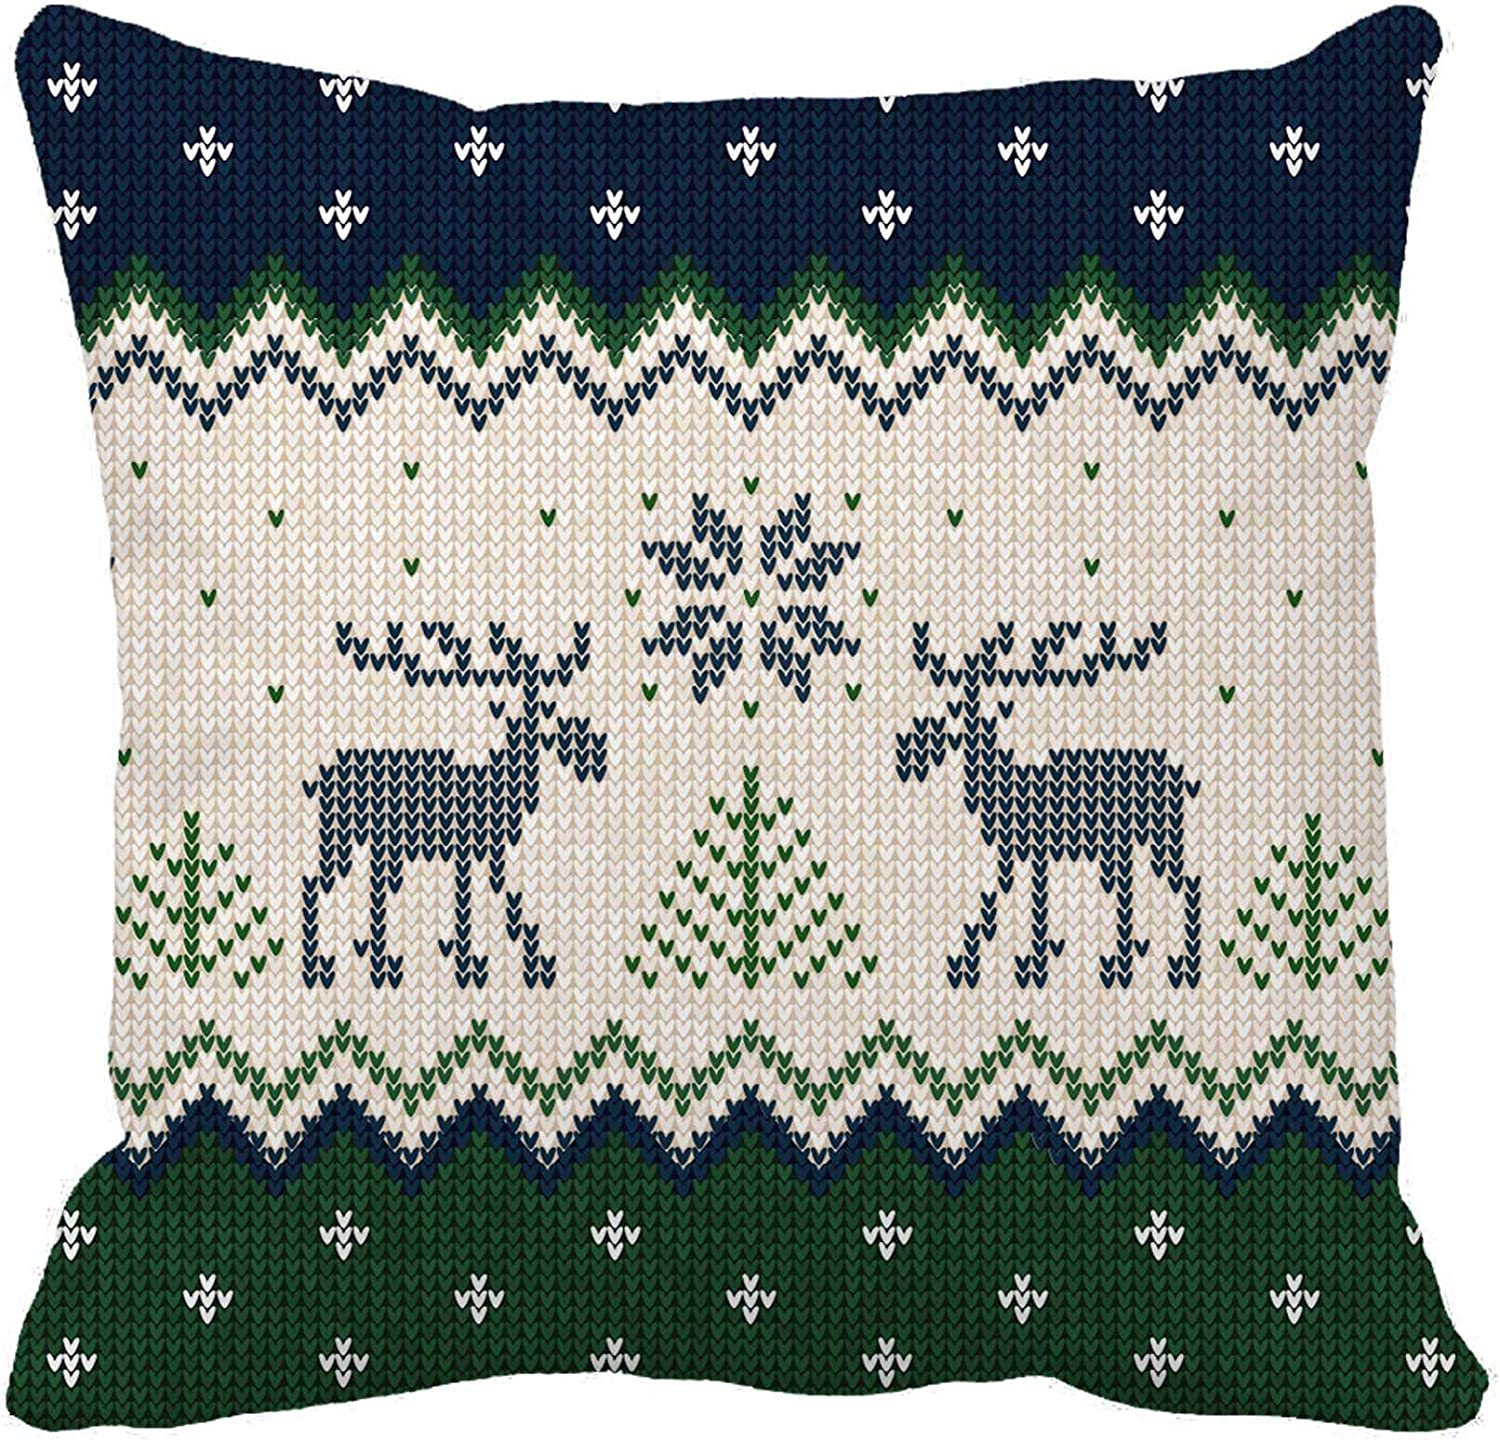 Amazon Com Awowee Throw Pillow Cover Ugly Sweater Merry Christmas And Happy New Year Border 18x18 Inches Pillowcase Home Decorative Square Pillow Case Cushion Cover Home Kitchen